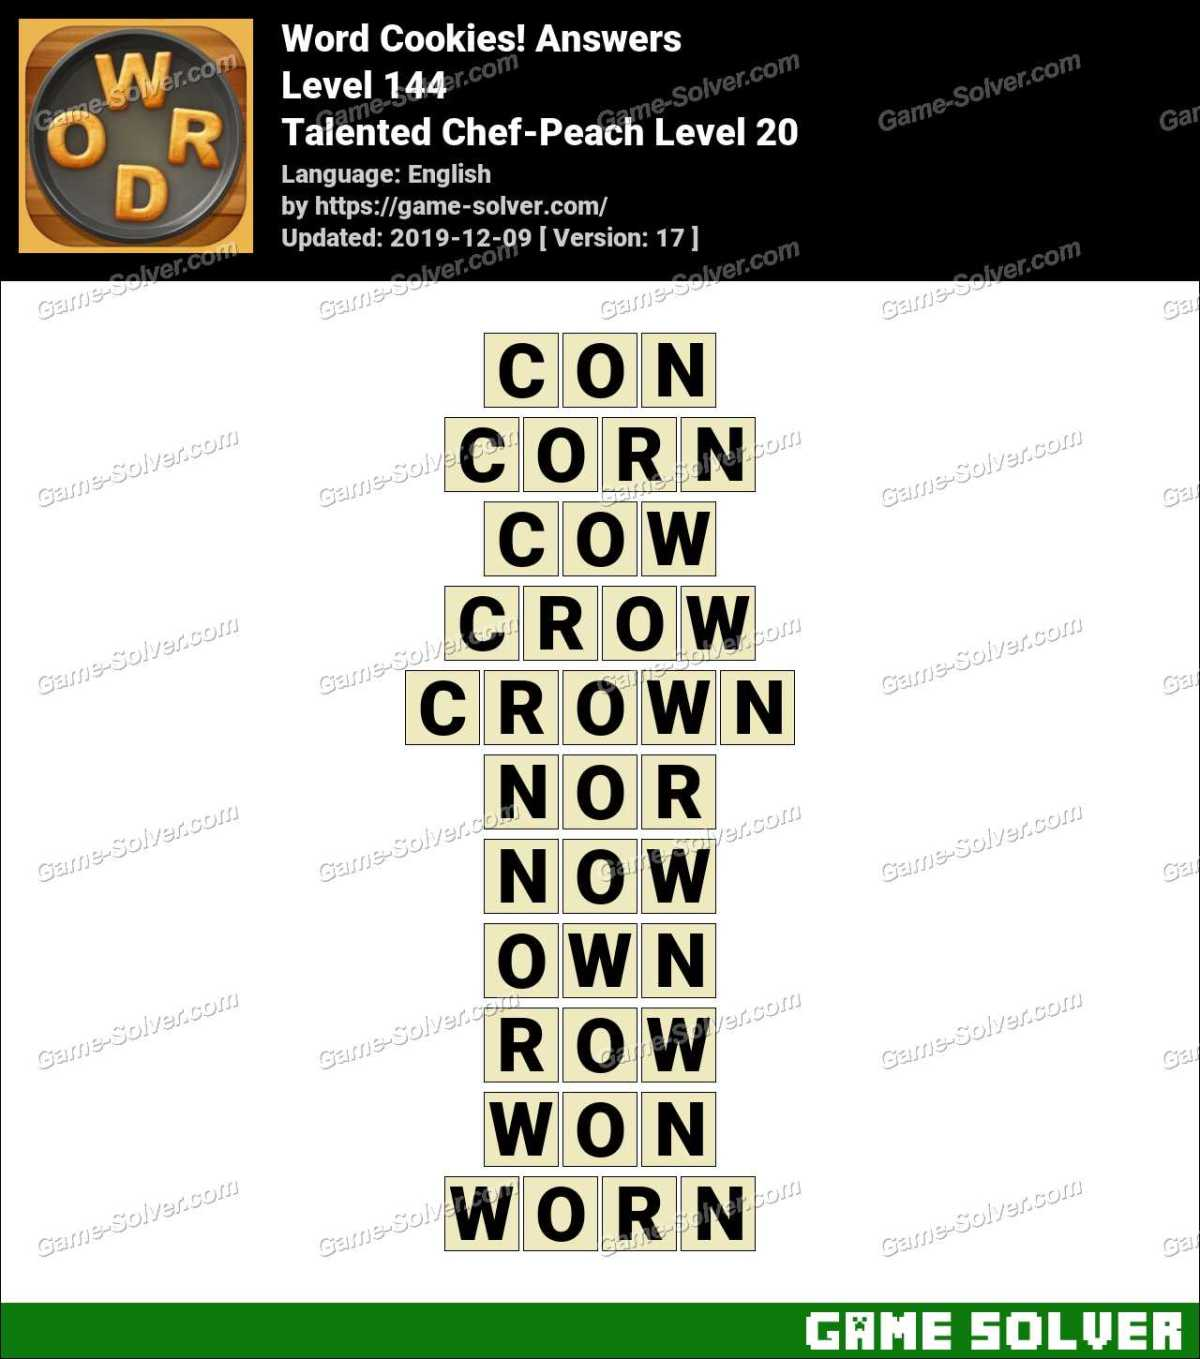 Word Cookies Talented Chef-Peach Level 20 Answers